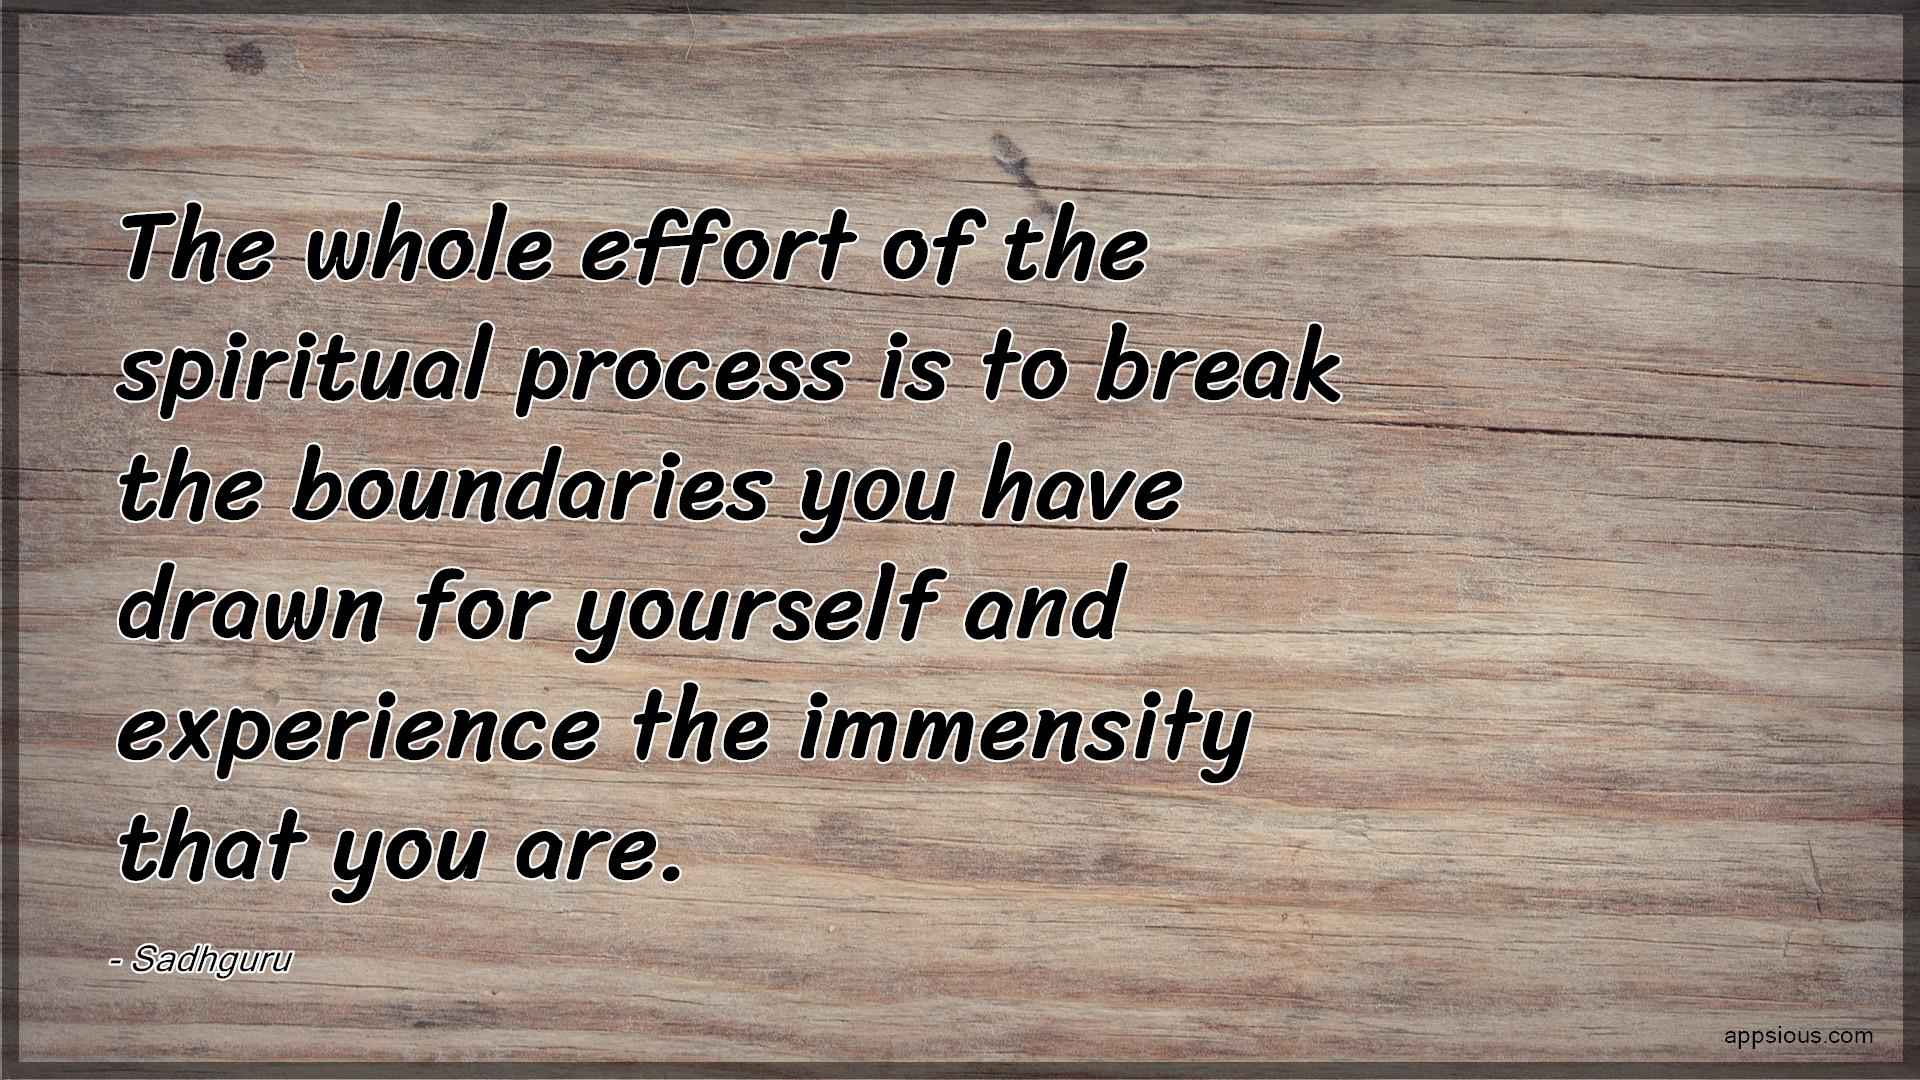 The whole effort of the spiritual process is to break the boundaries you have drawn for yourself and experience the immensity that you are.